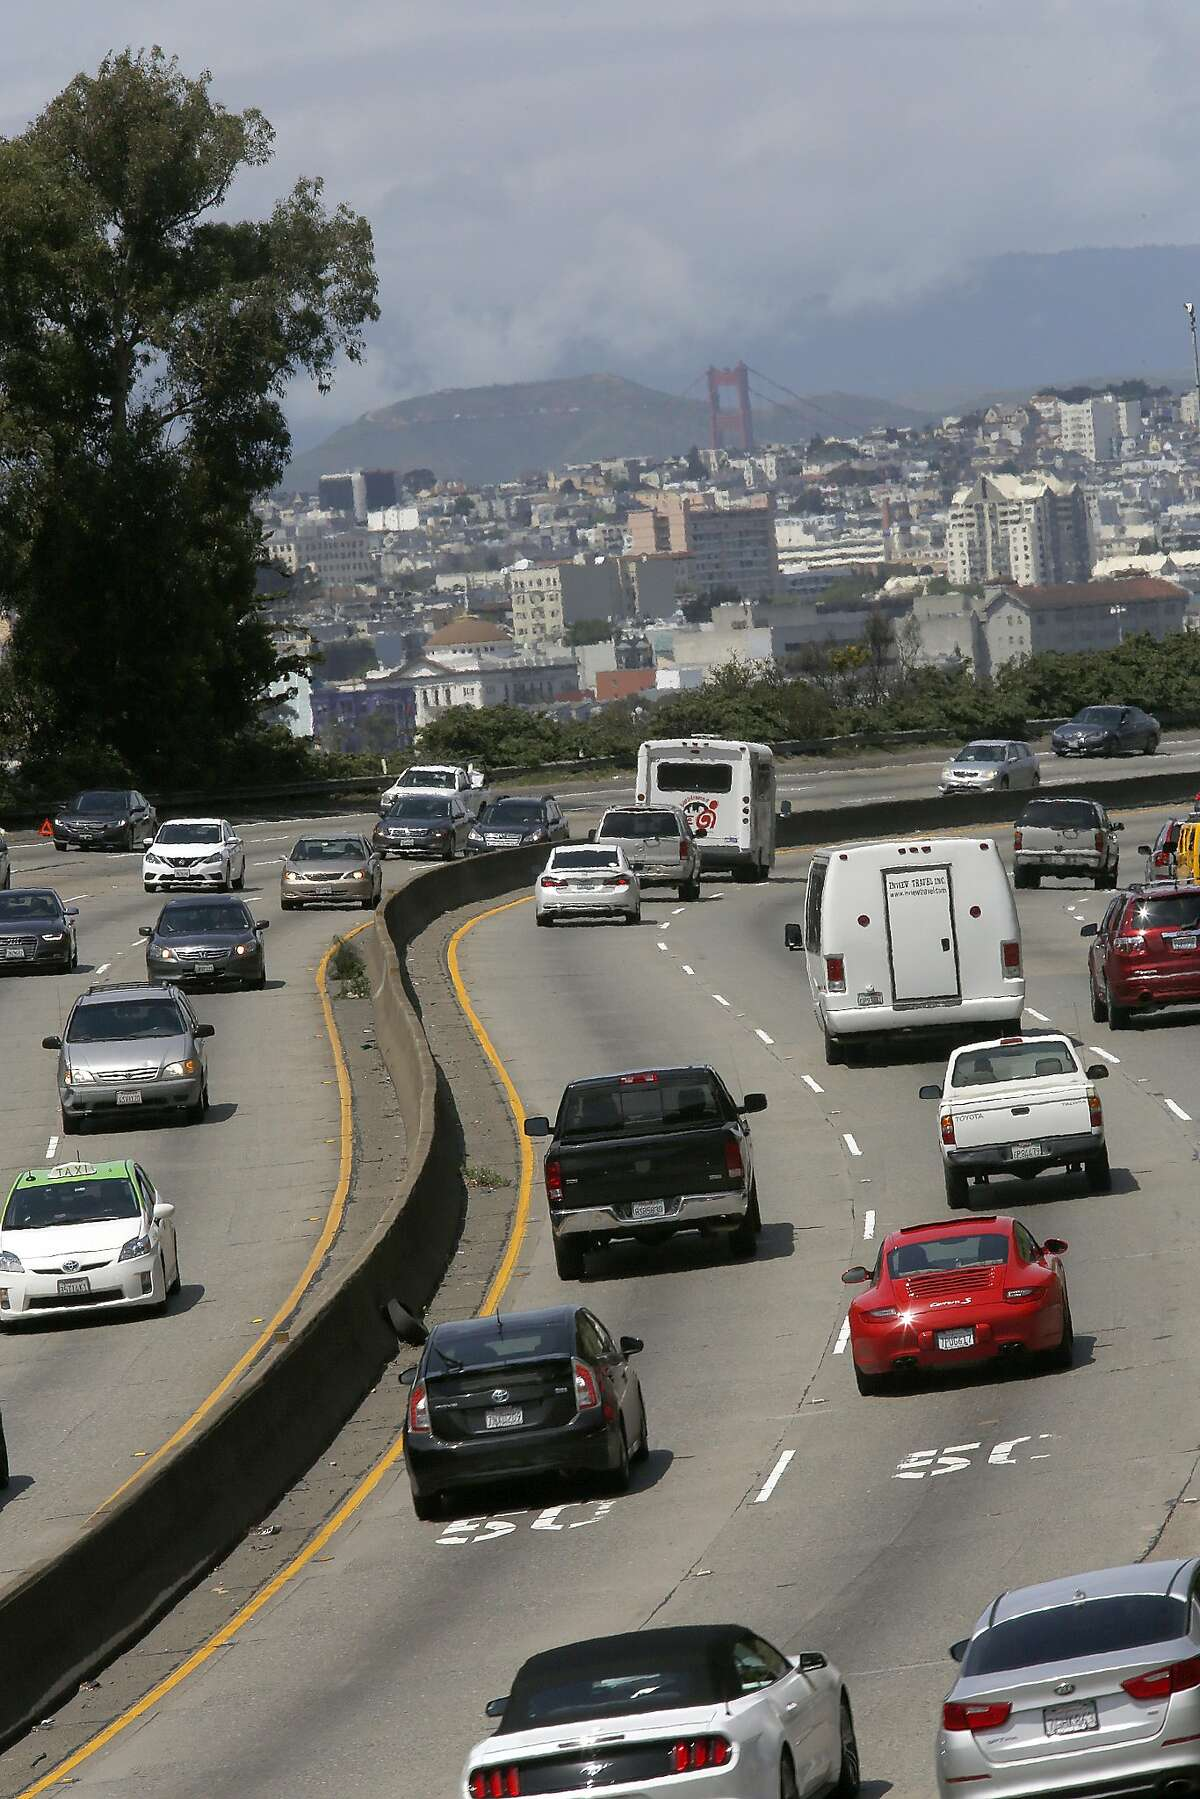 Vehicles seen on highway 101 with lightest traffic during early afternoon on Wednesday, April 19, 2017, in San Francisco, Calif.